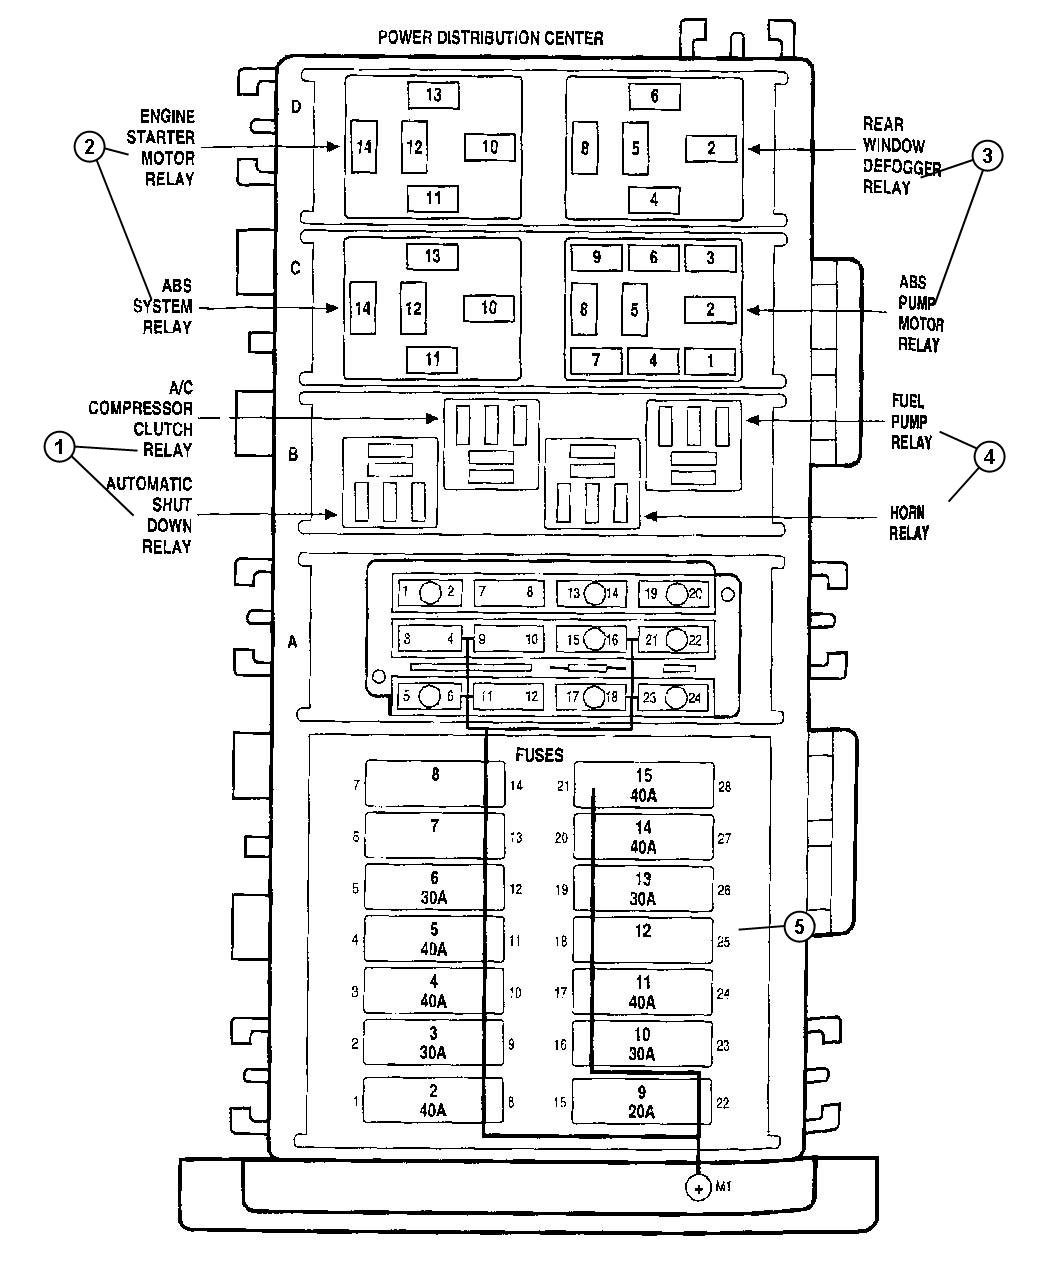 wiring diagram for 1999 jeep wrangler wiring image fuse box diagram on a 2002 jeep wrangler jodebal com on wiring diagram for 1999 jeep